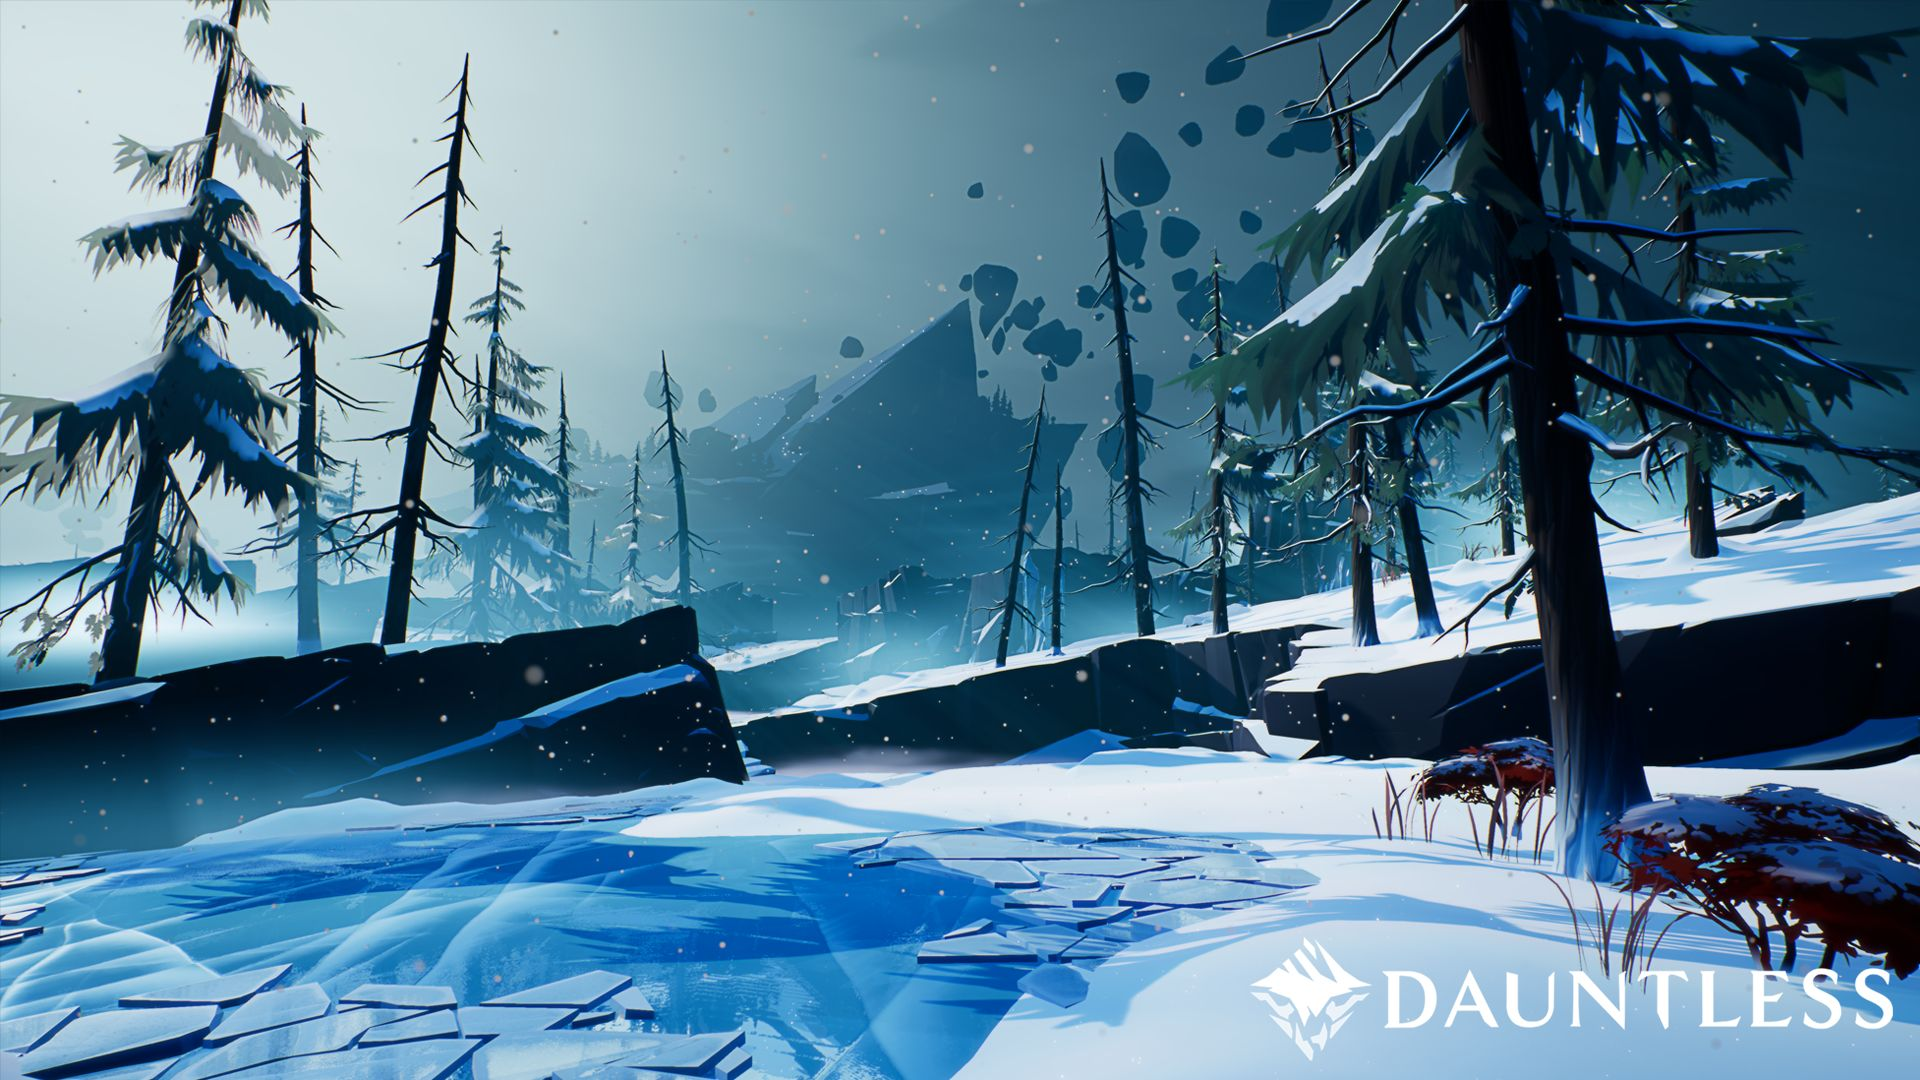 Dauntless Snow Biome